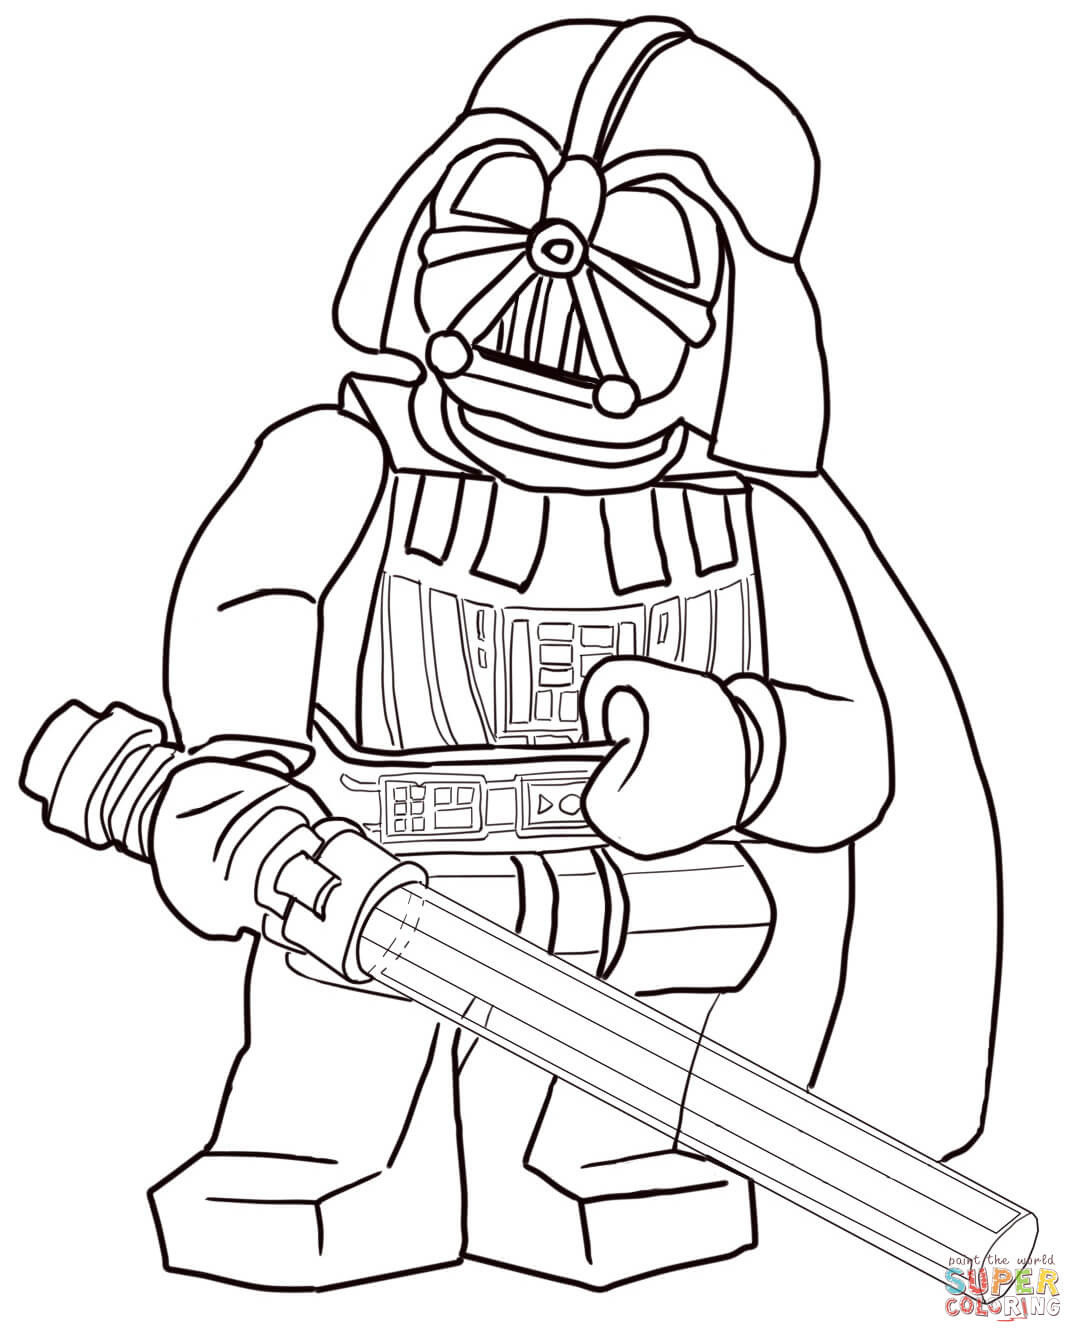 Darth Vader Ausmalbilder Inspirierend Awesome Darth Vader Coloring Pages Coloring Elegant Ausmalbilder Sammlung